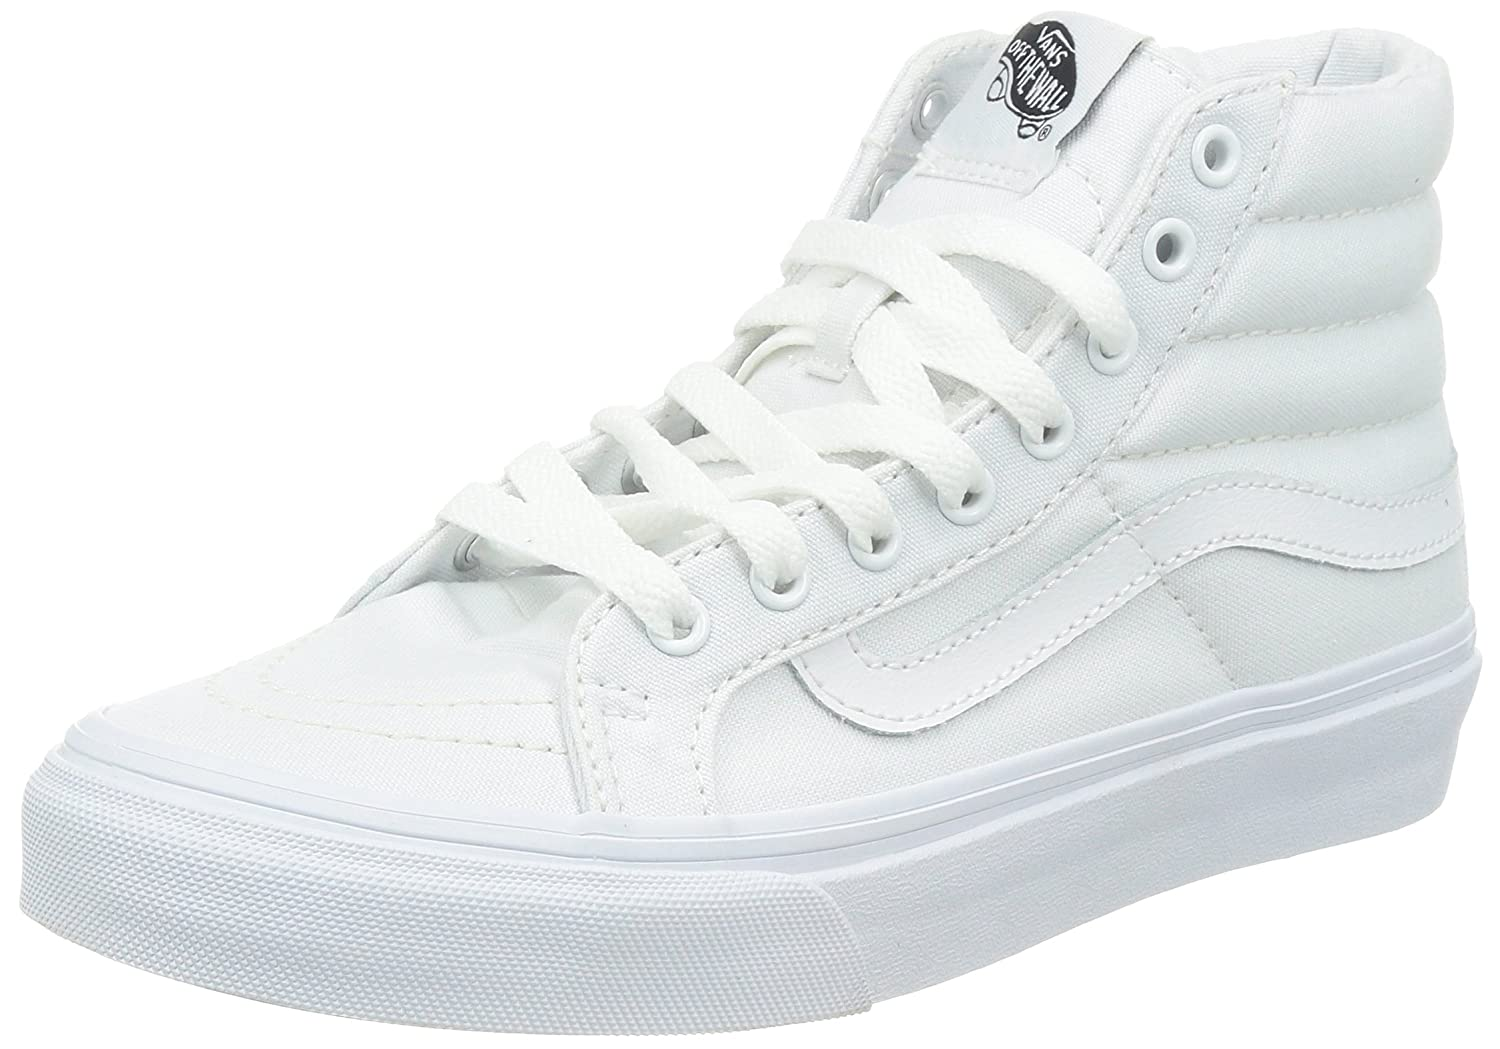 Vans Unisex Sk8-Hi Slim Women's Skate Shoe B00F5800VG 6 D(M) US|(Canvas) True White